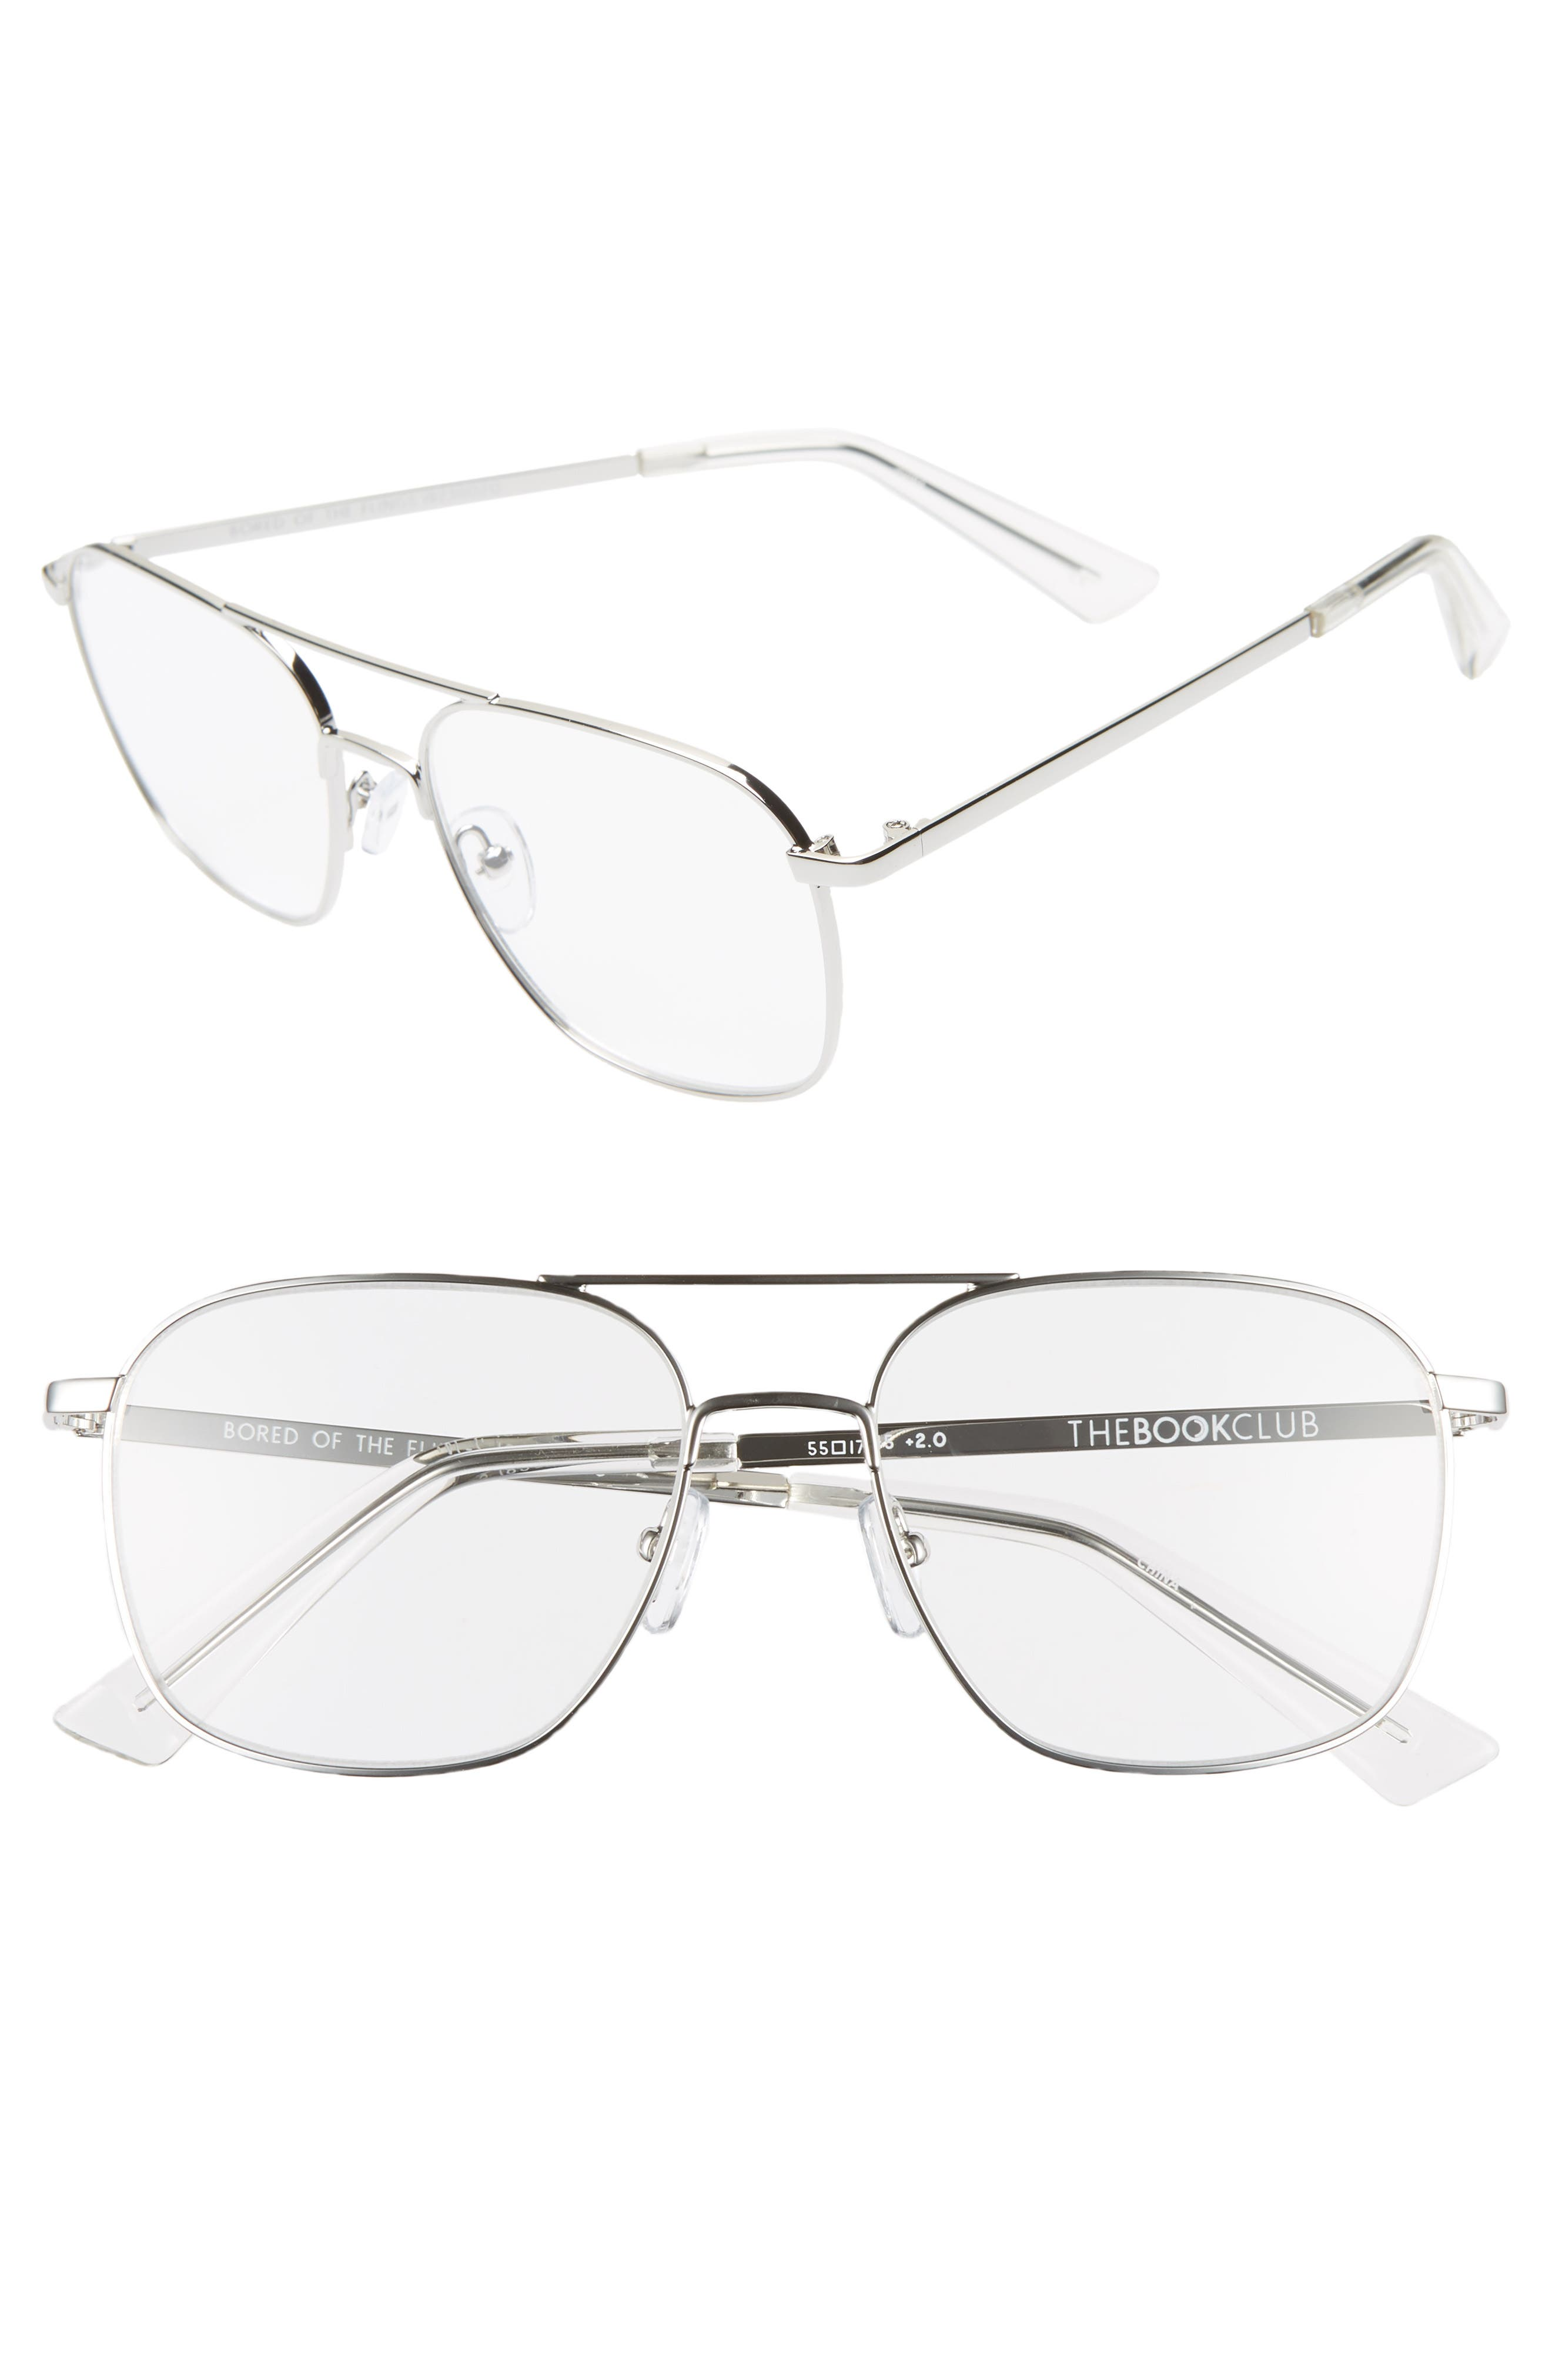 THE BOOKCLUB Bored of the Flings 55mm Reading Glasses, Main, color, 040